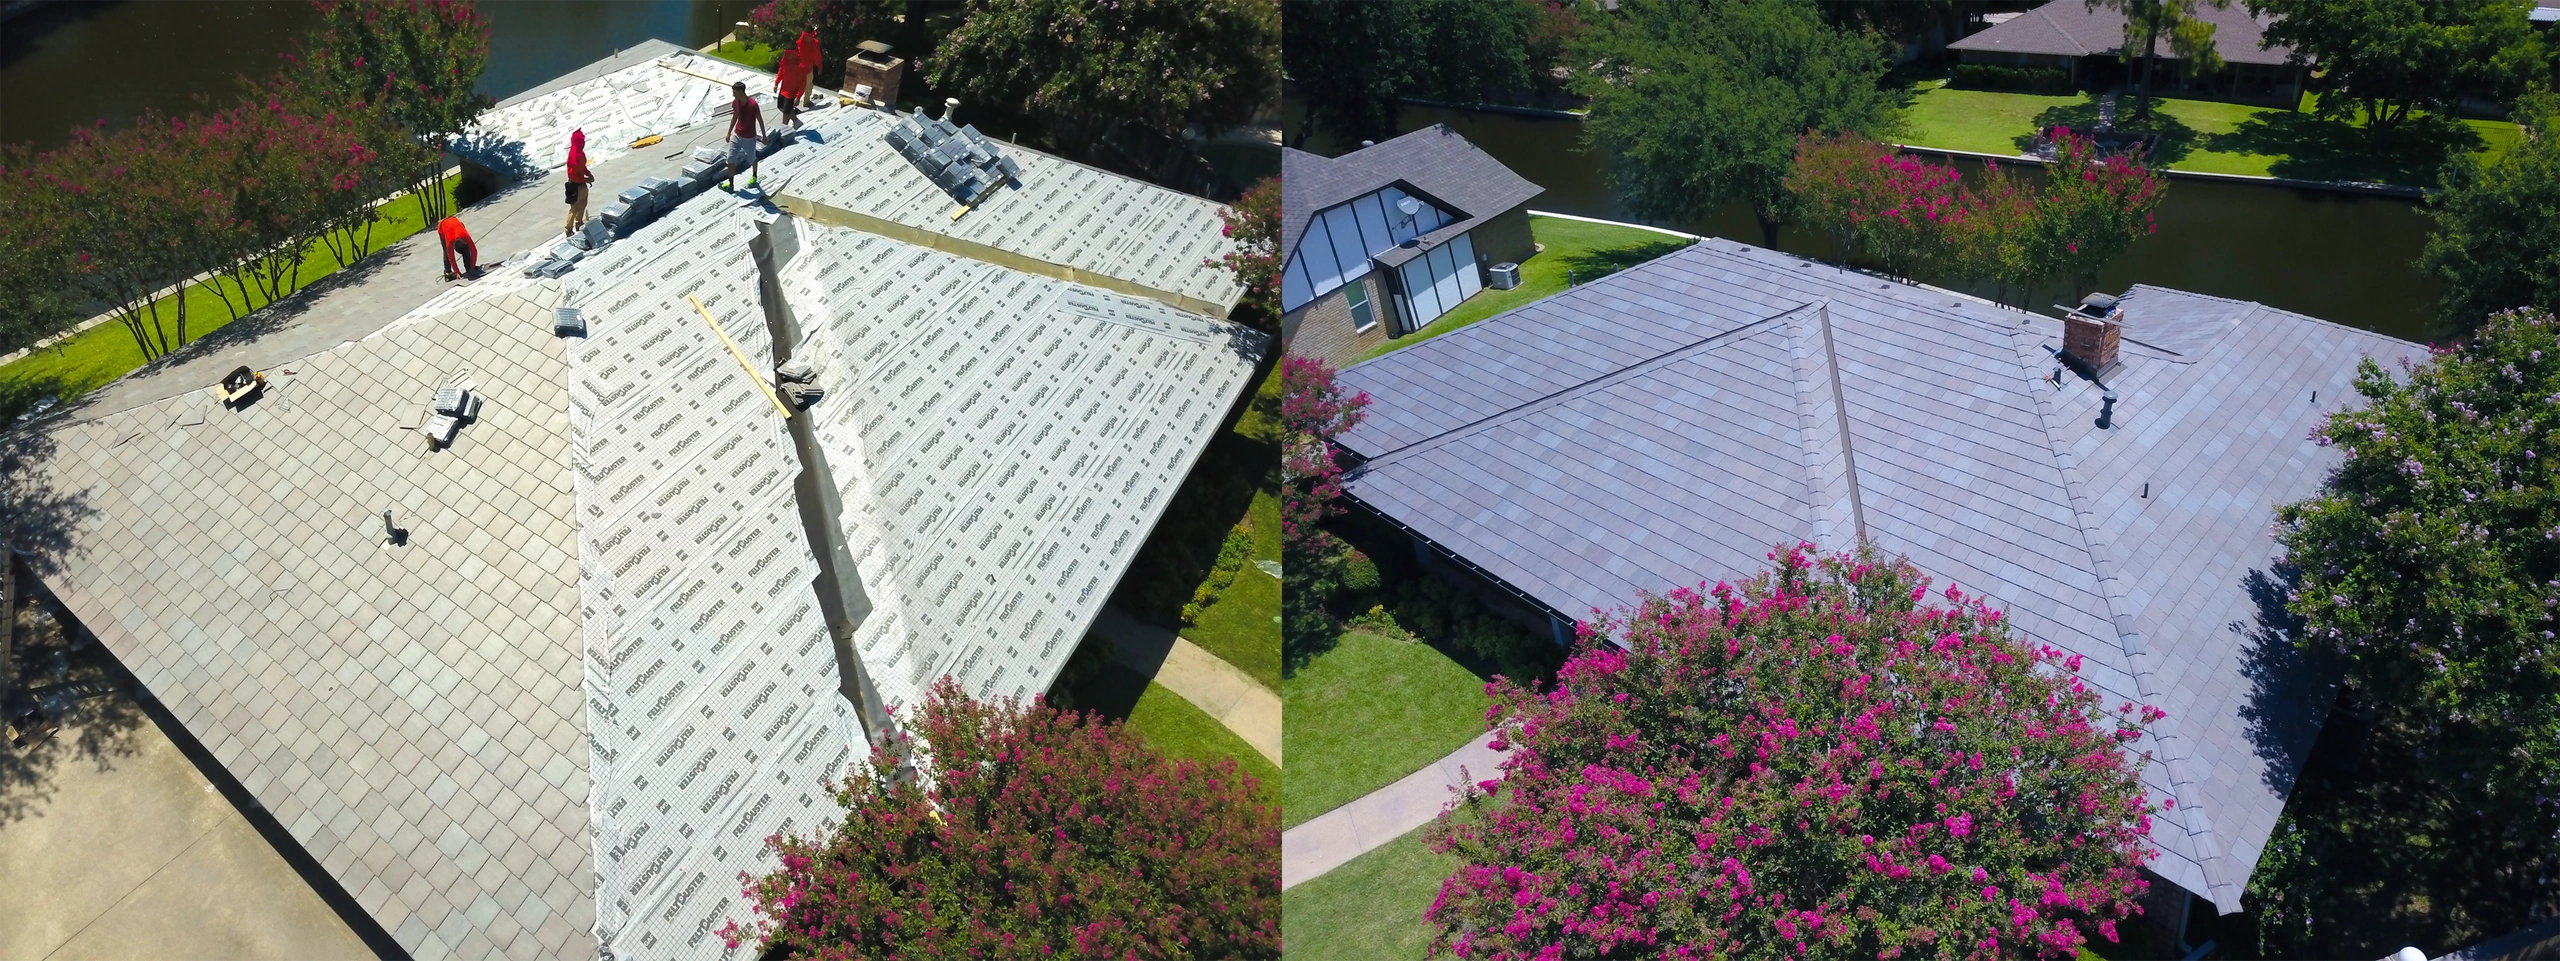 Eagle Total Services Roofing Solar Energy Gutters Siding